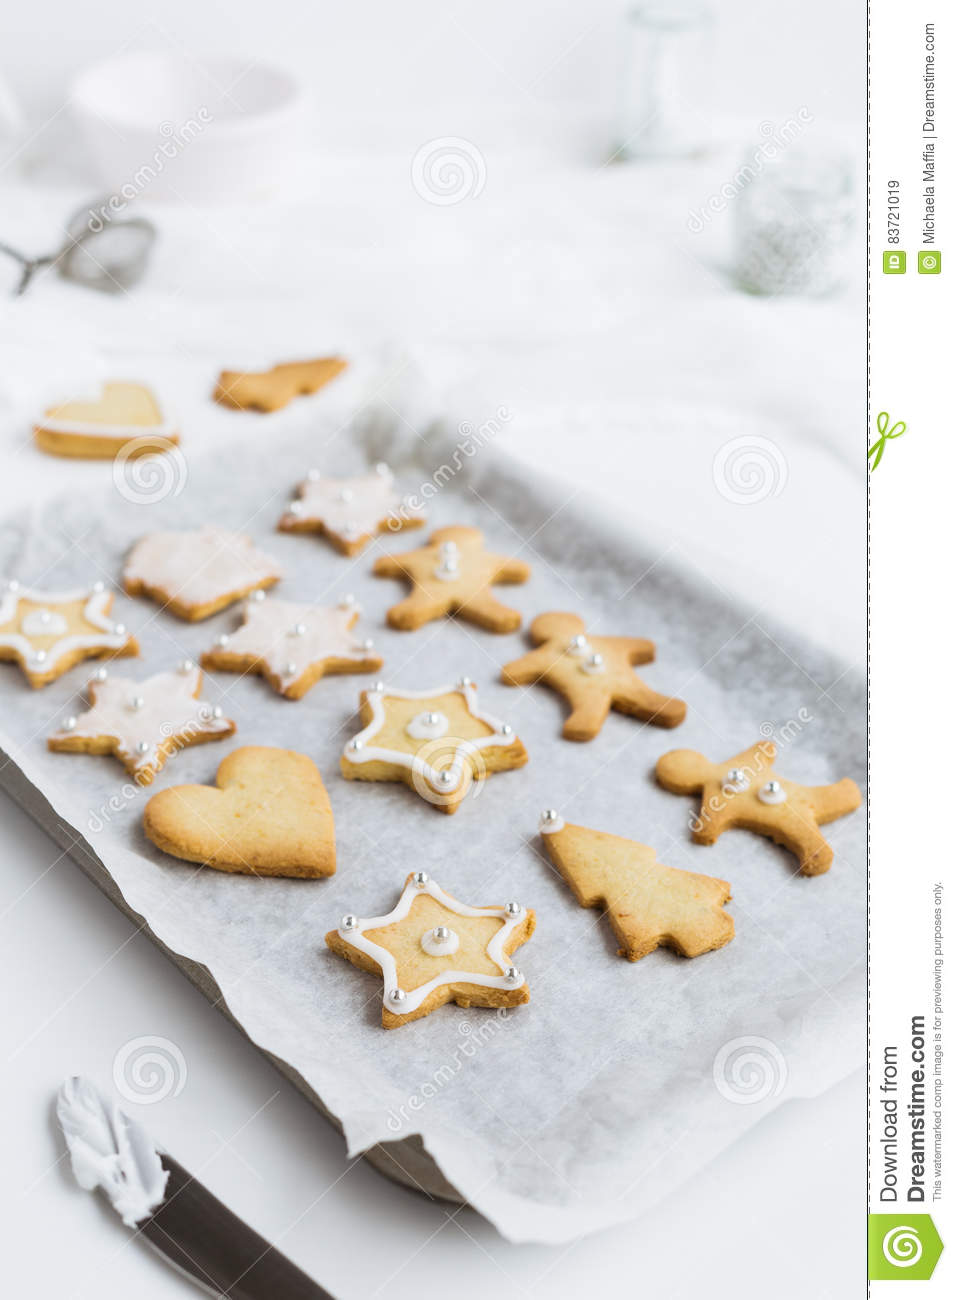 Decorating Christmas Shortbread Biscuits On Baking Tray Stock Image